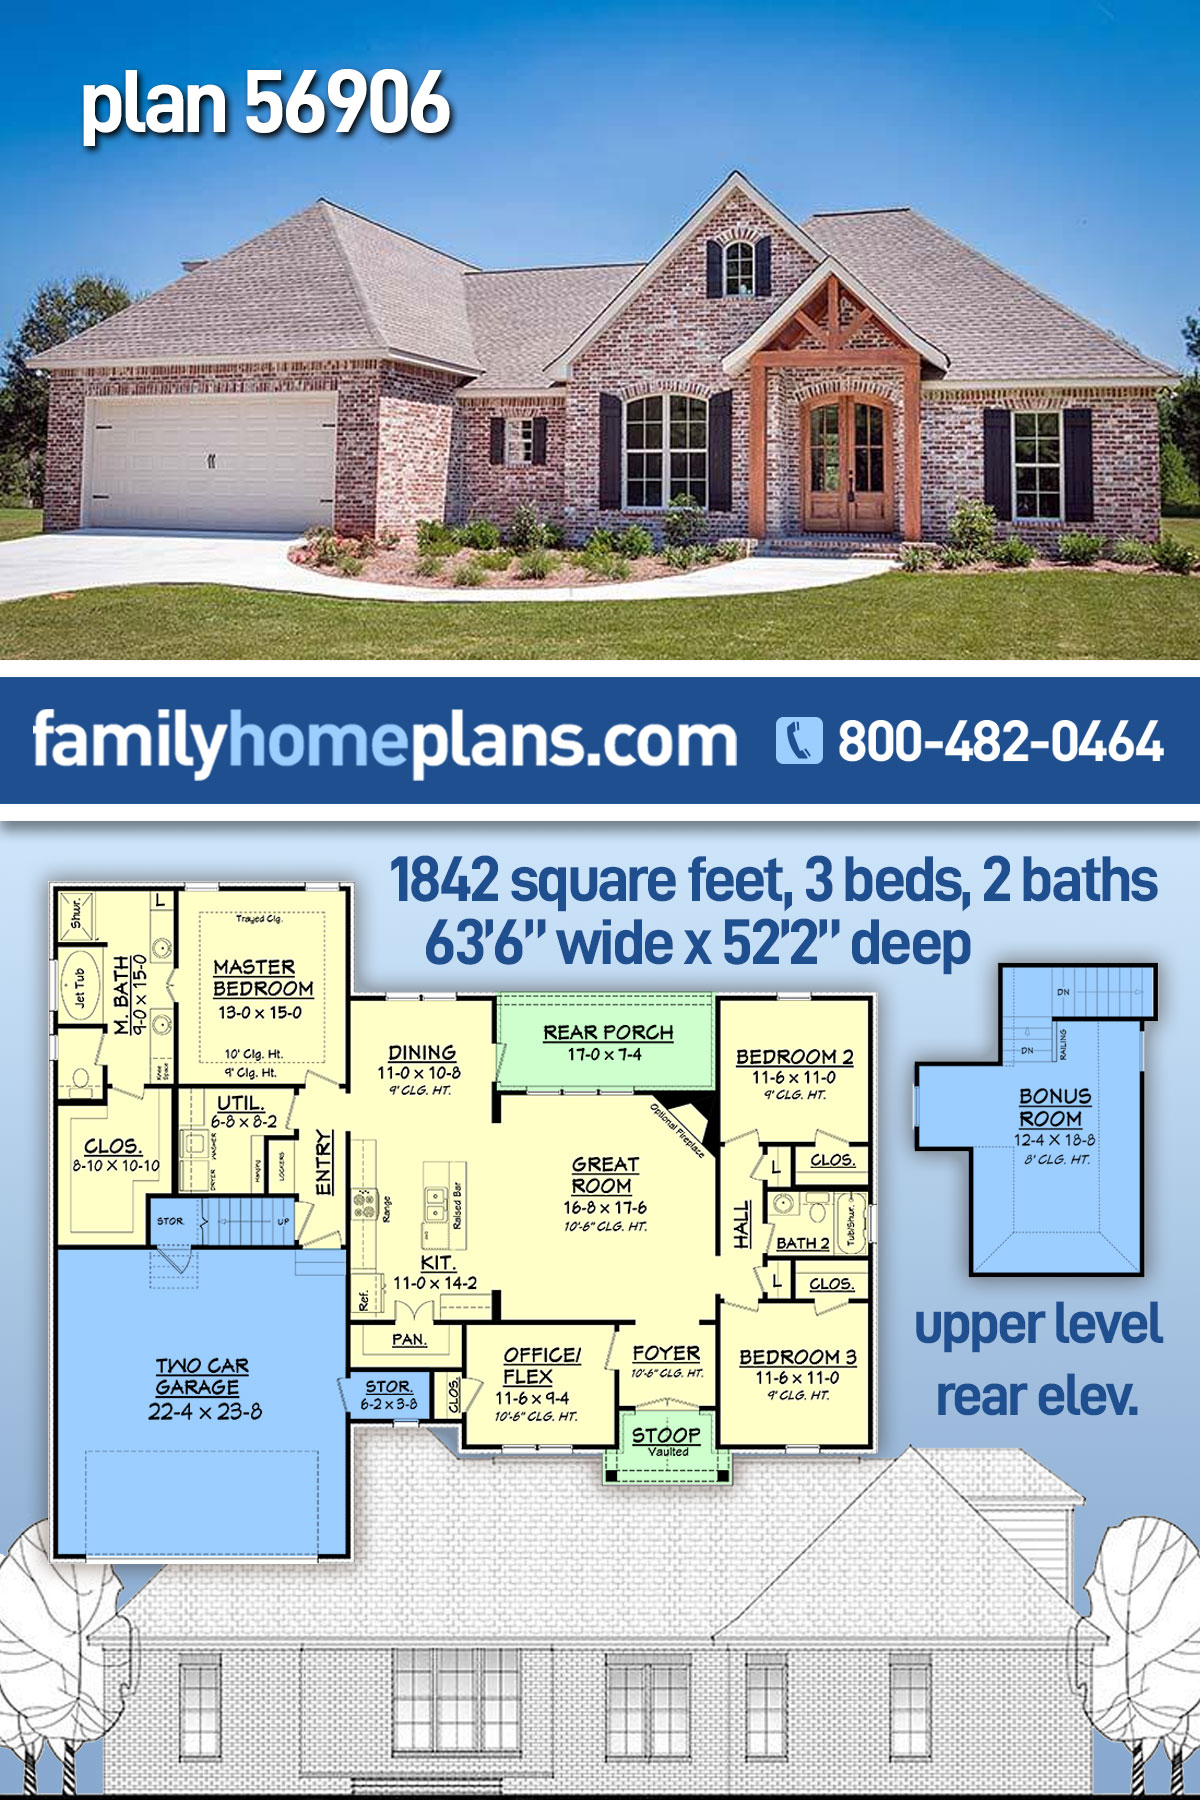 French Country, Traditional House Plan 56906 with 3 Beds, 2 Baths, 2 Car Garage